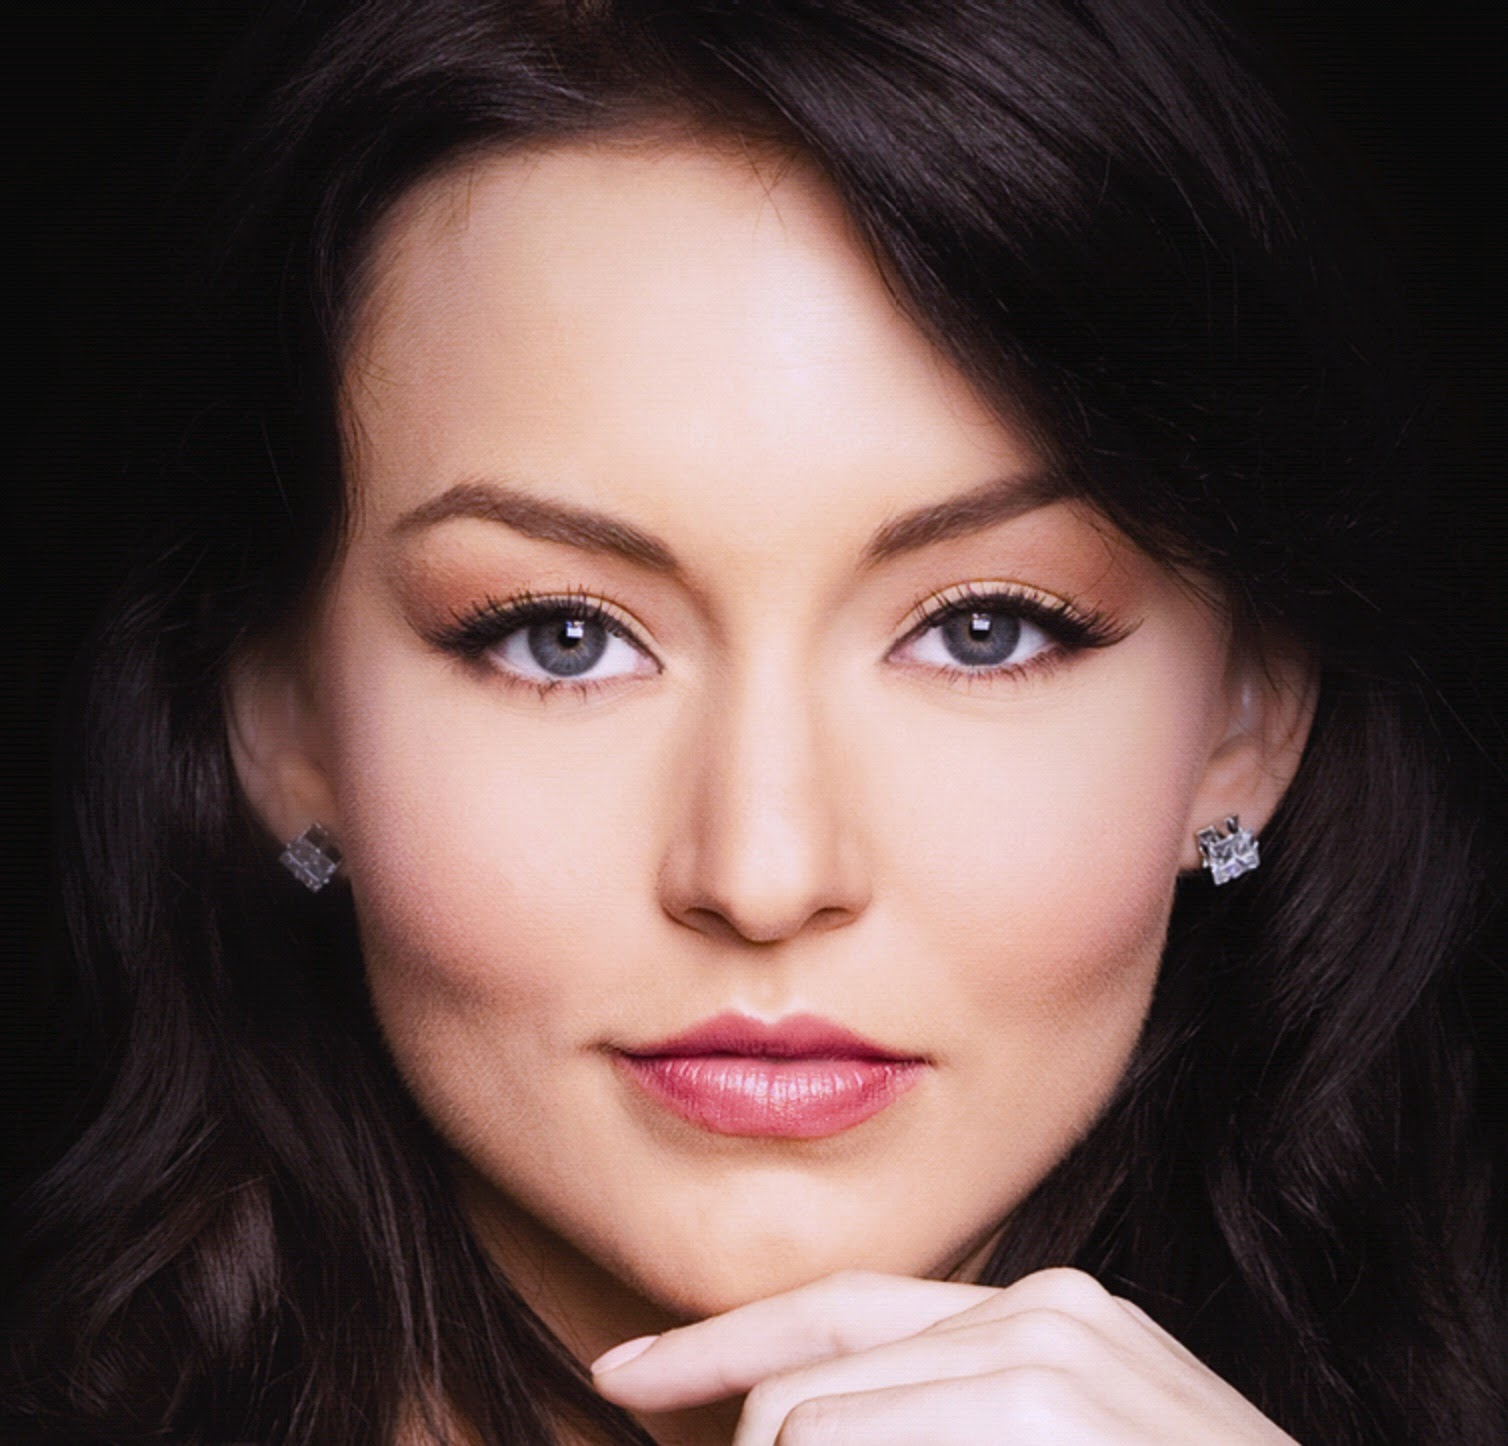 Hollywood Actress Wallpaper: Angelique Boyer HD Wallpapers